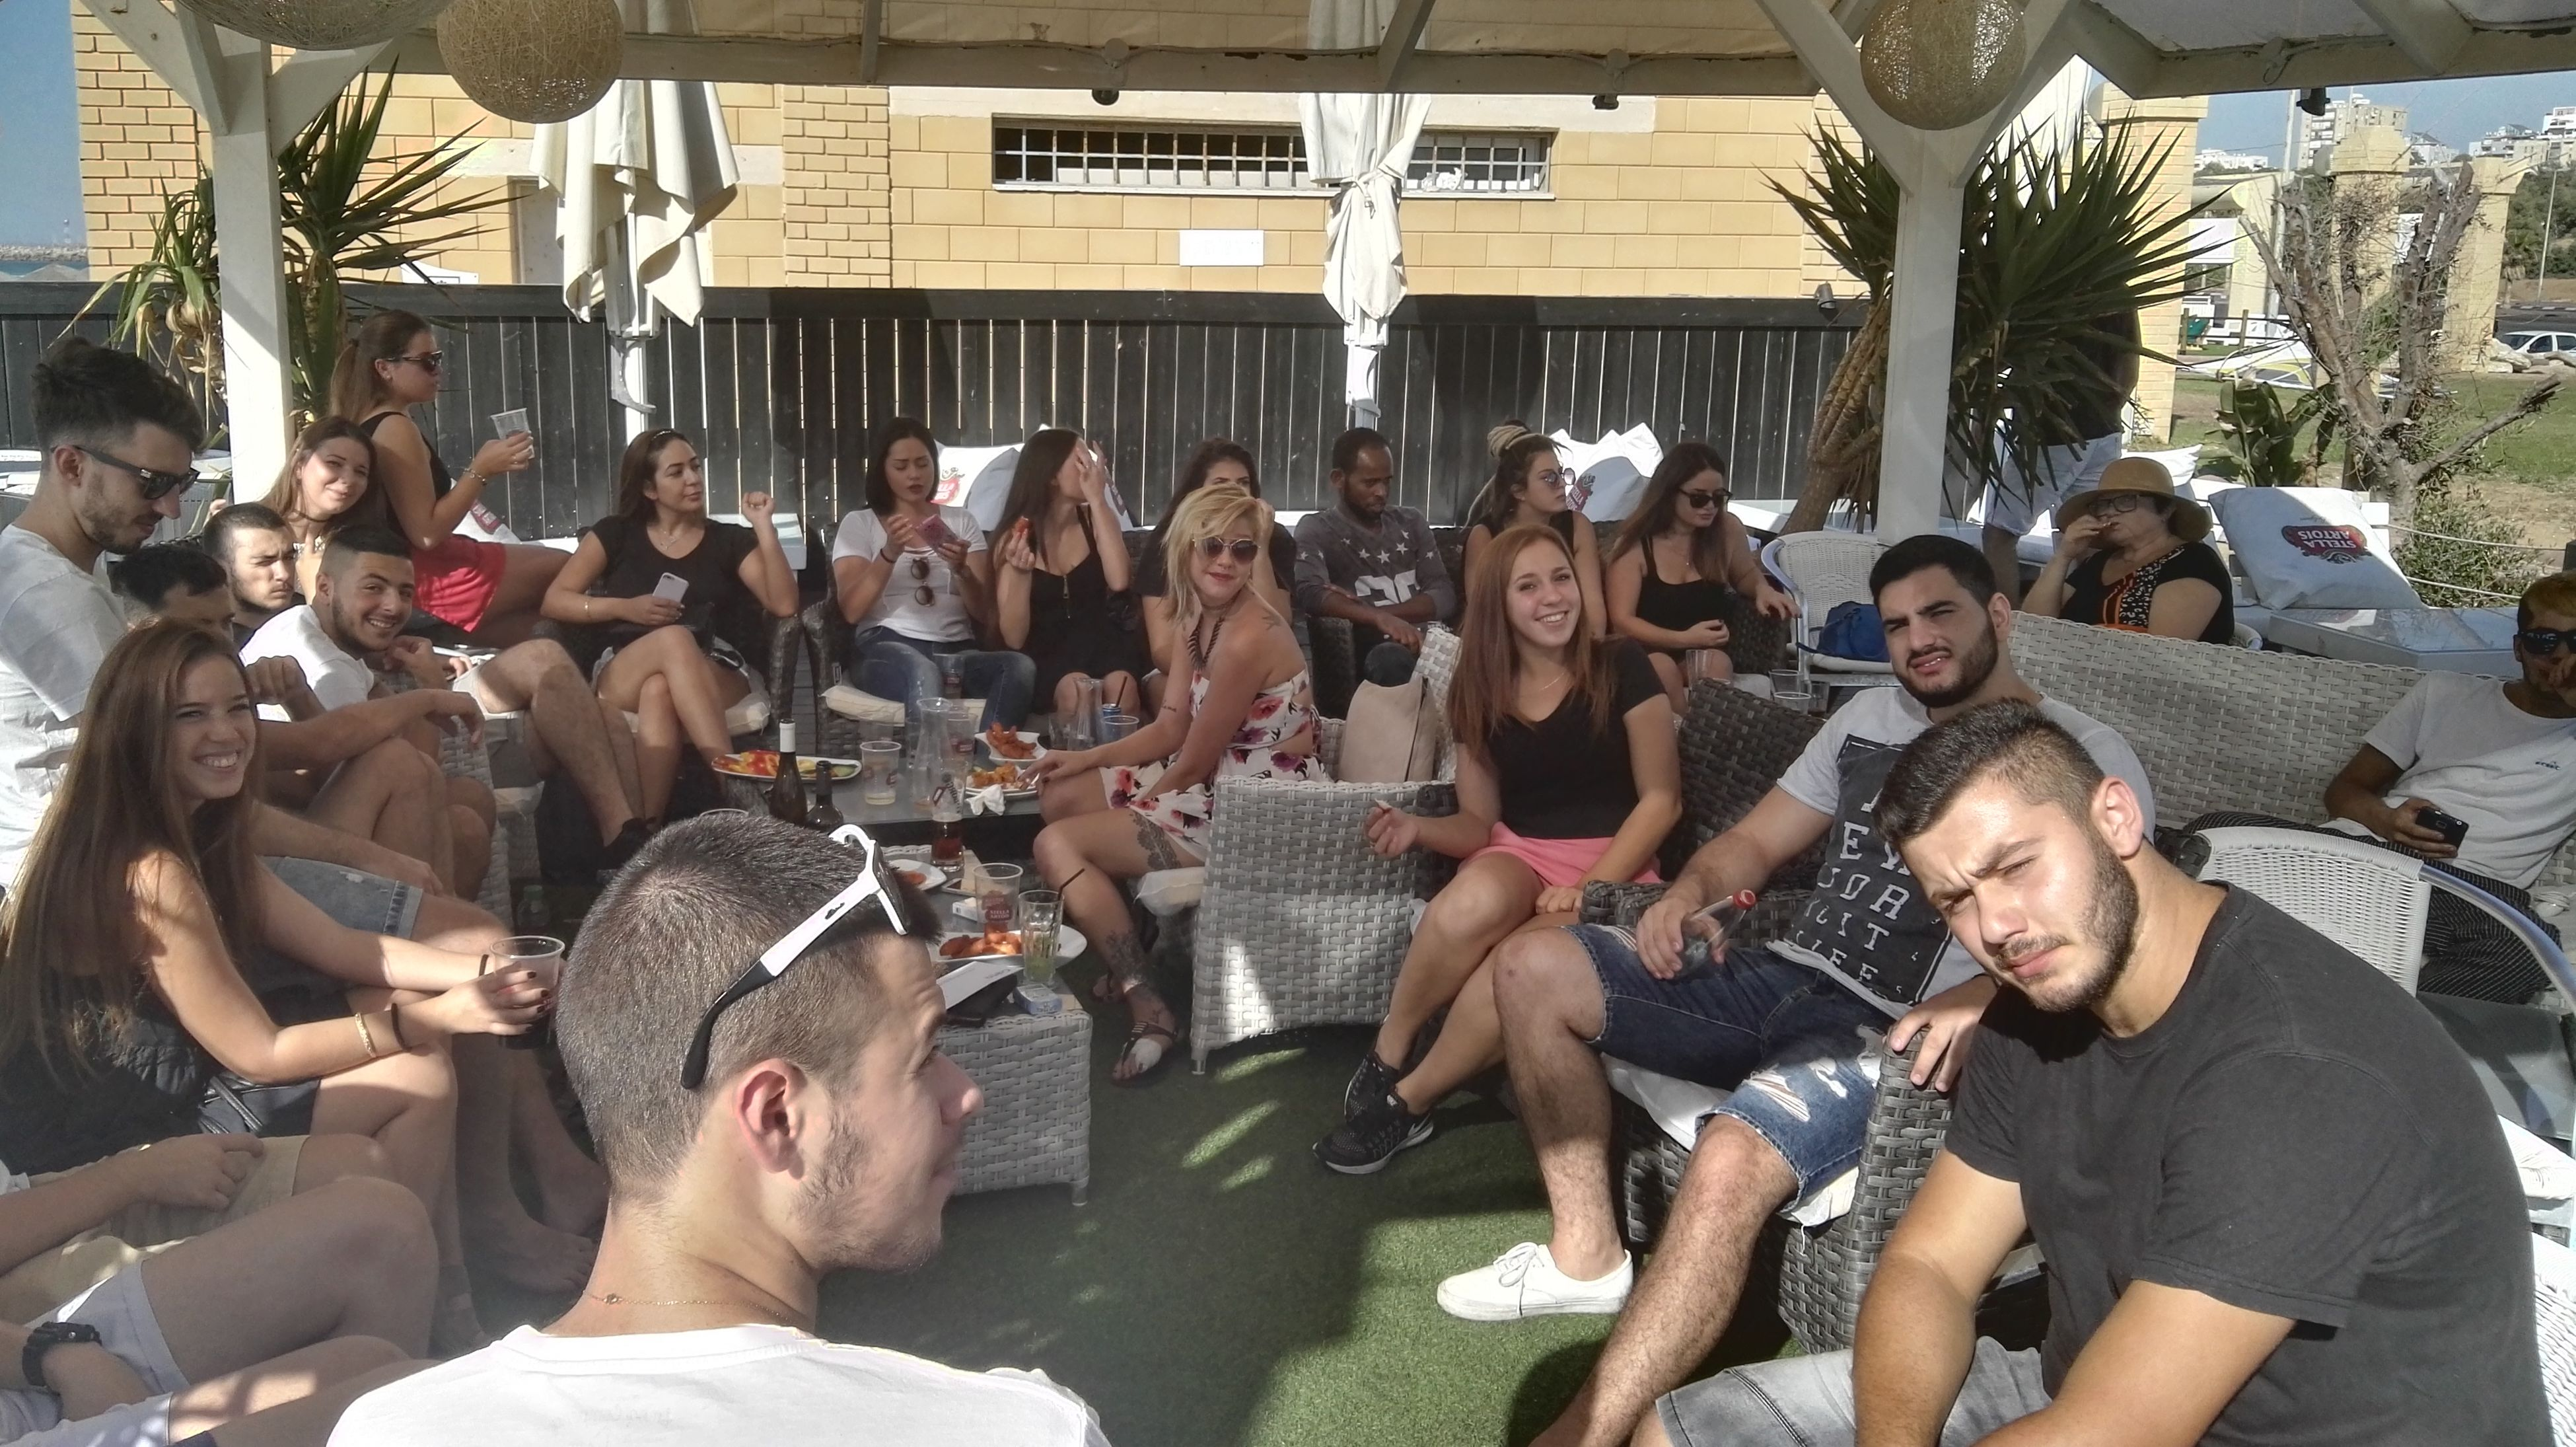 leisure activity, lifestyles, togetherness, casual clothing, large group of people, friendship, person, fun, crowd, young adult, in front of, enjoyment, holiday - event, outdoors, performance